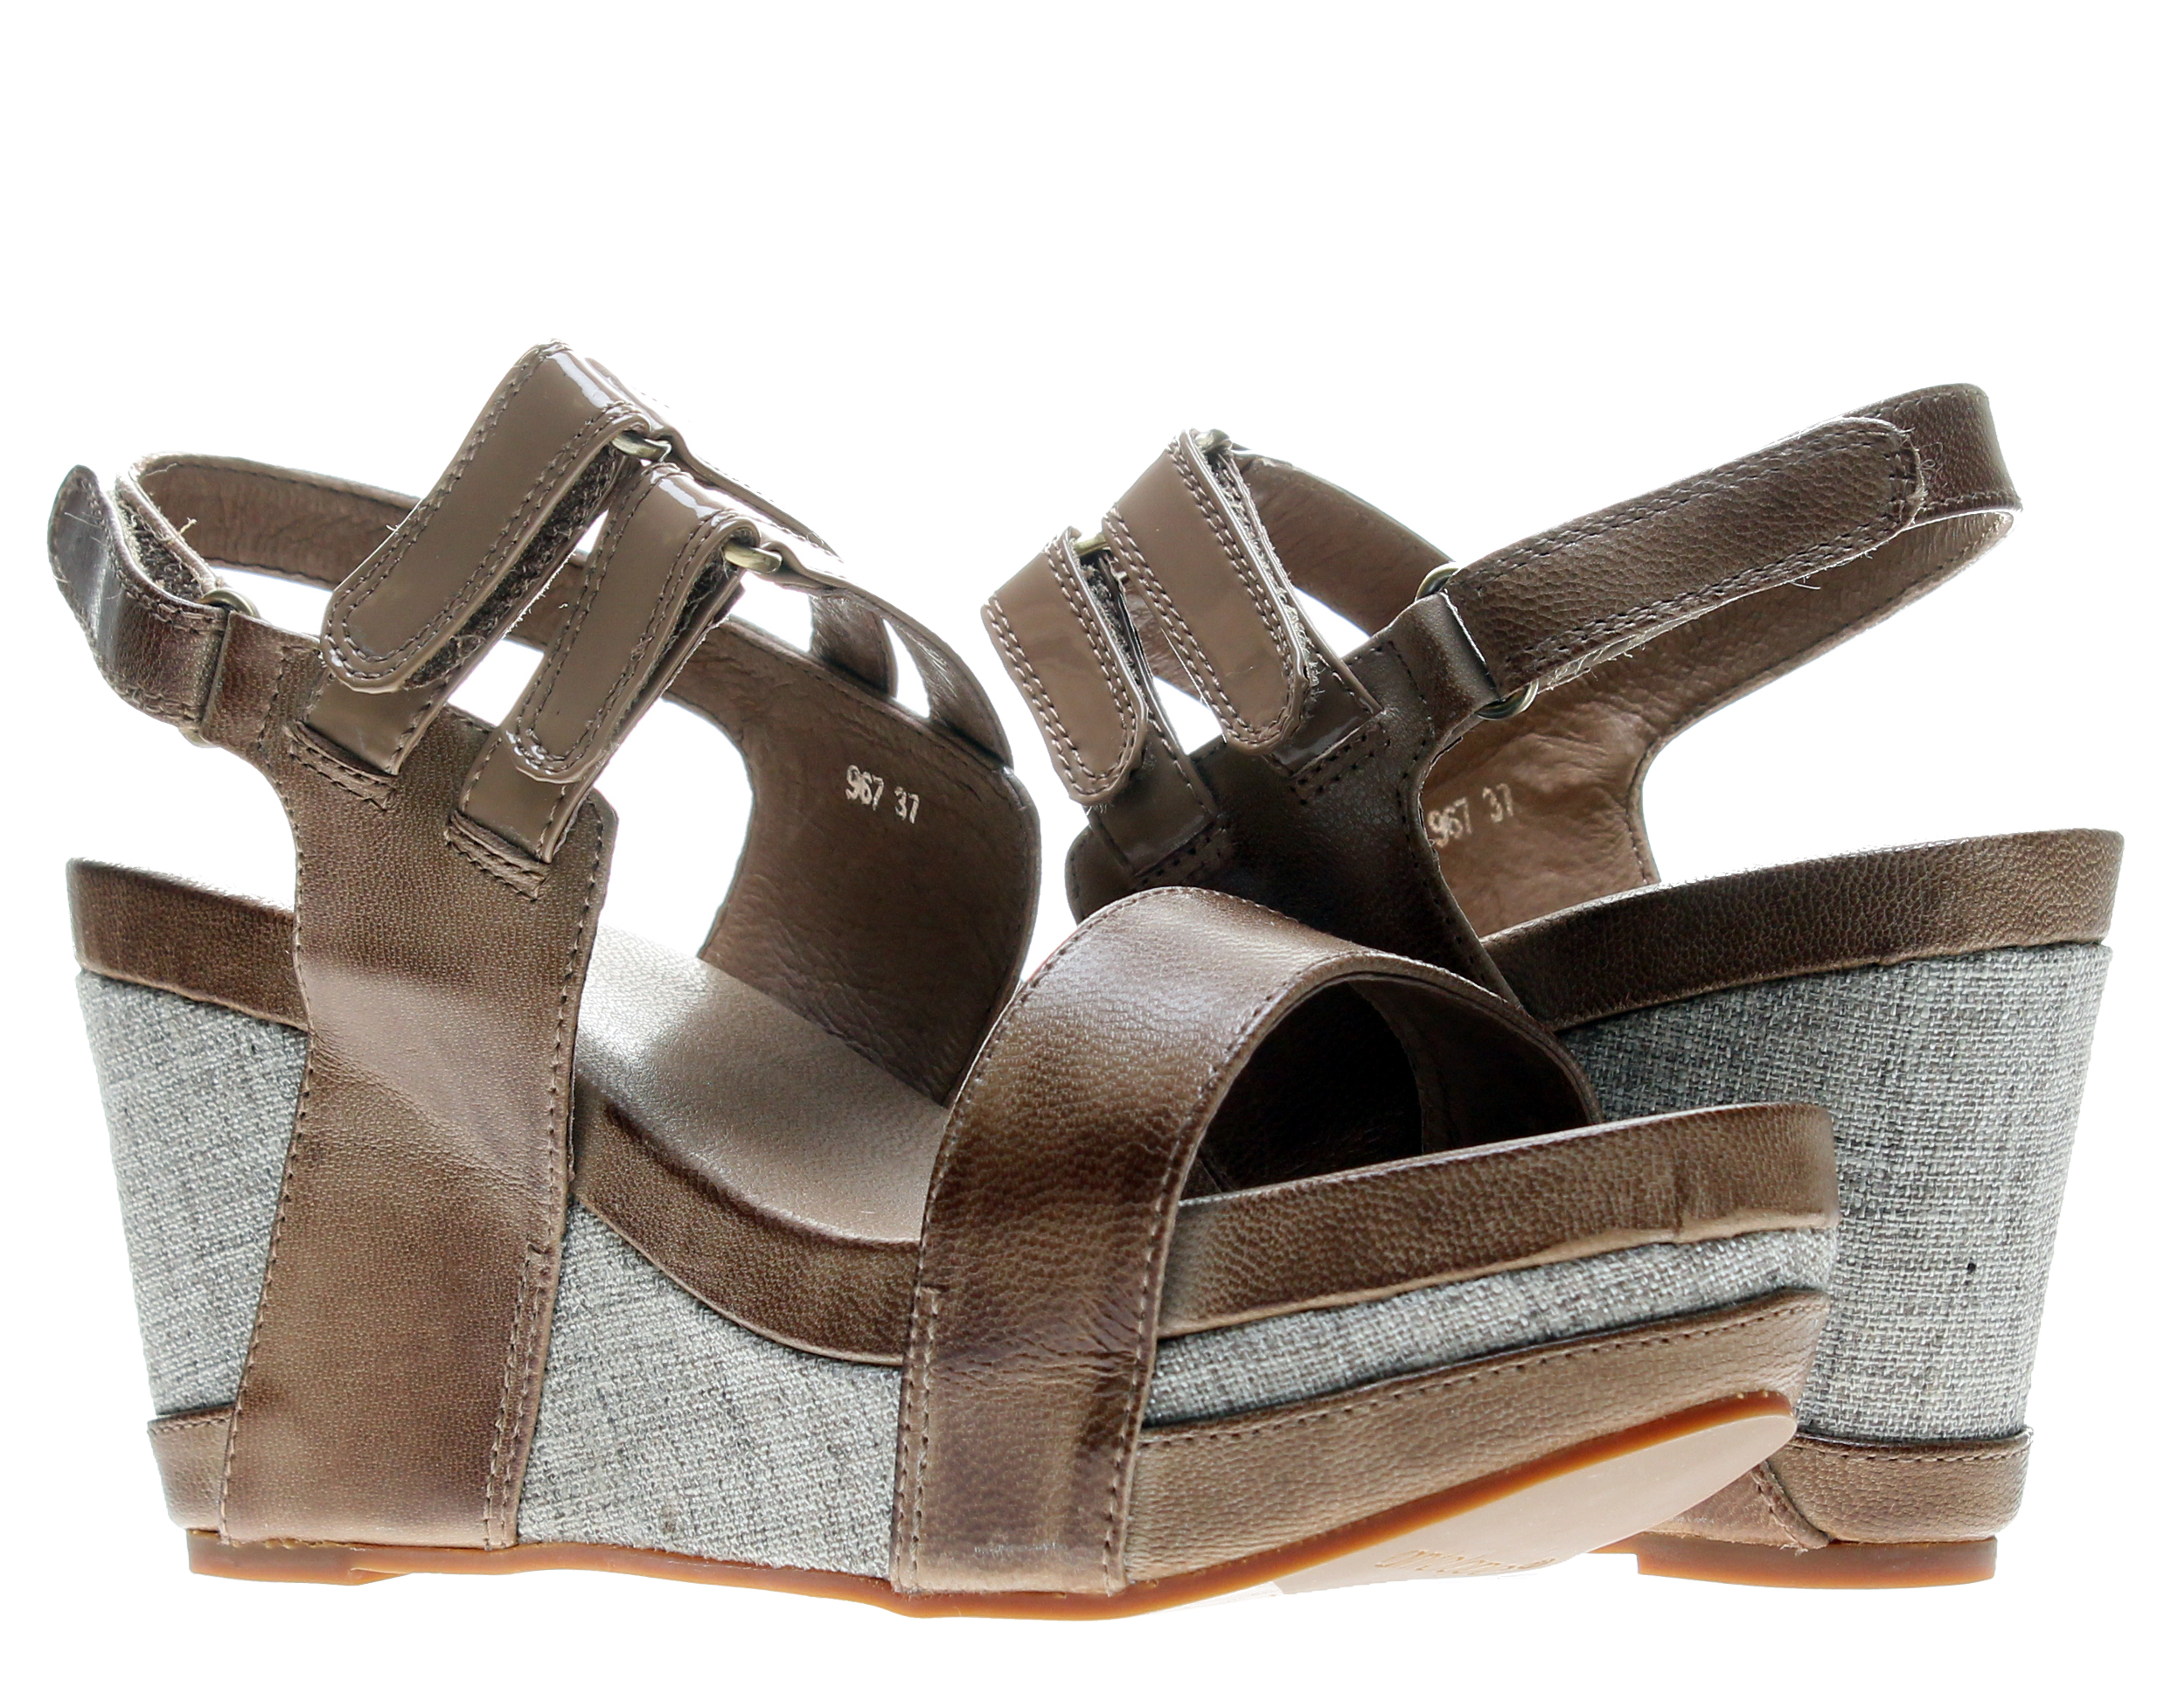 Antelope 967 Slingback Taupe Women's Wedge Sandals 967-TAUPE